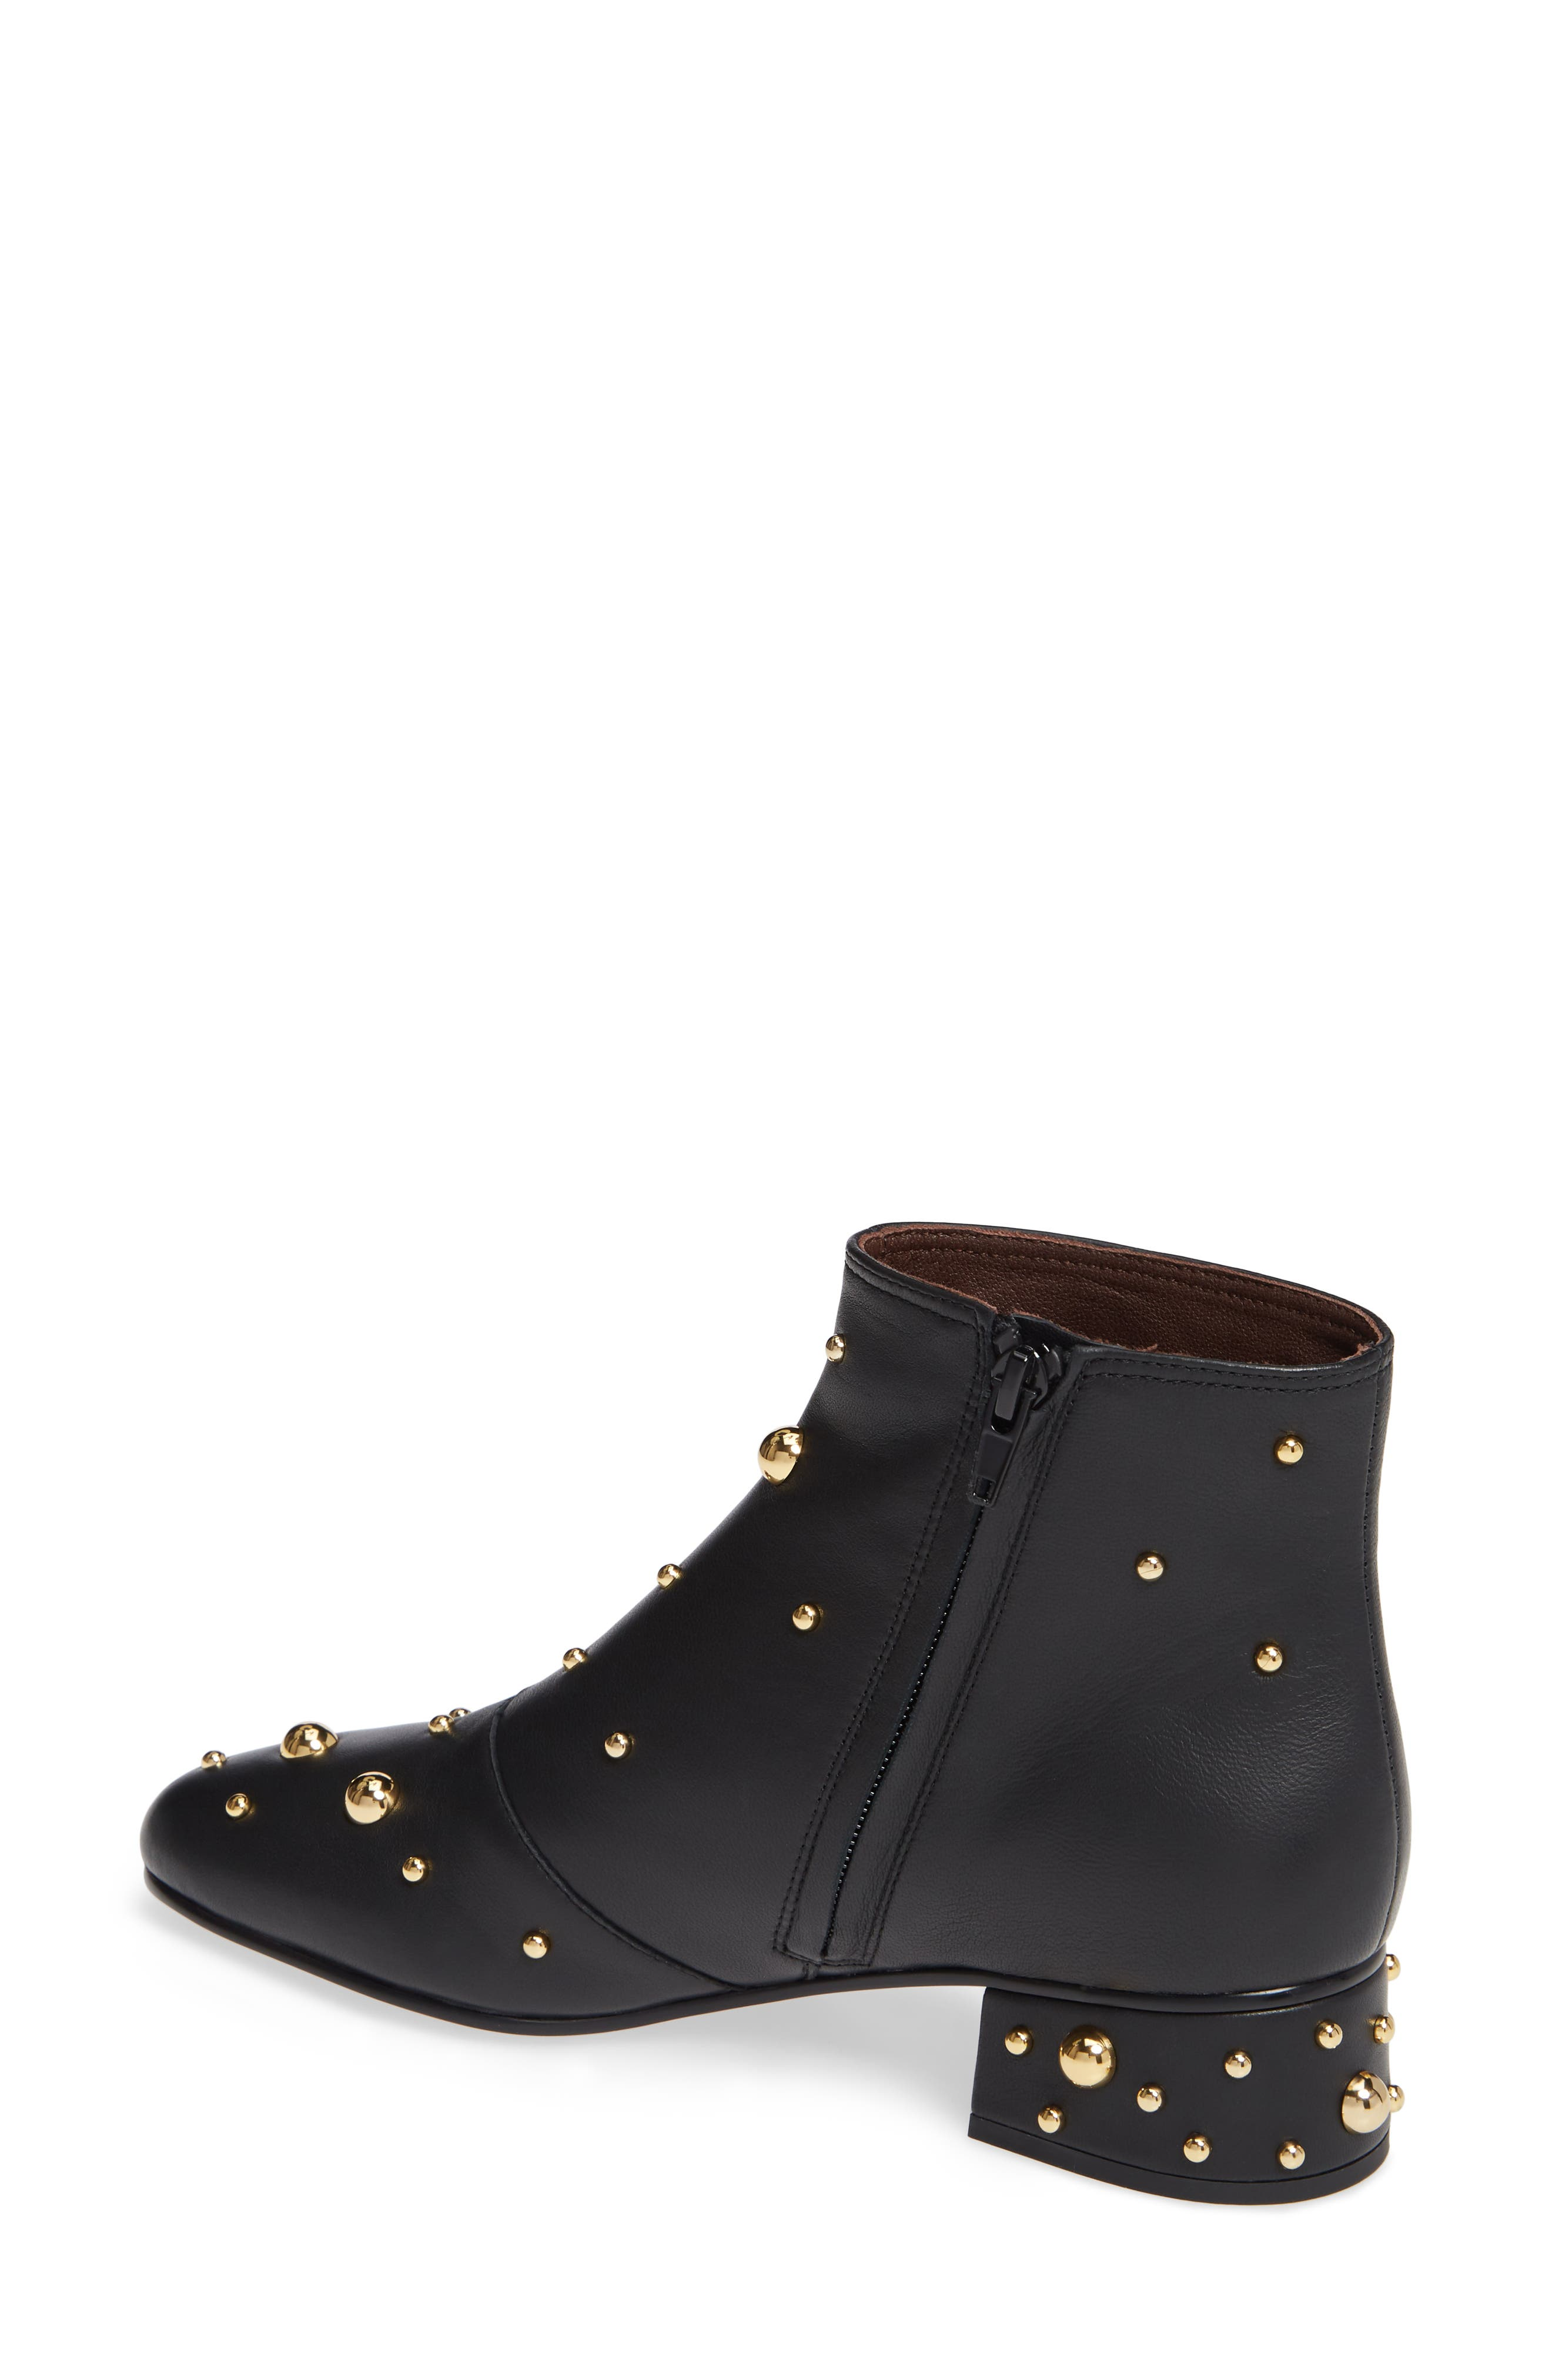 SEE BY CHLOÉ,                             Abby Studded Bootie,                             Alternate thumbnail 2, color,                             001